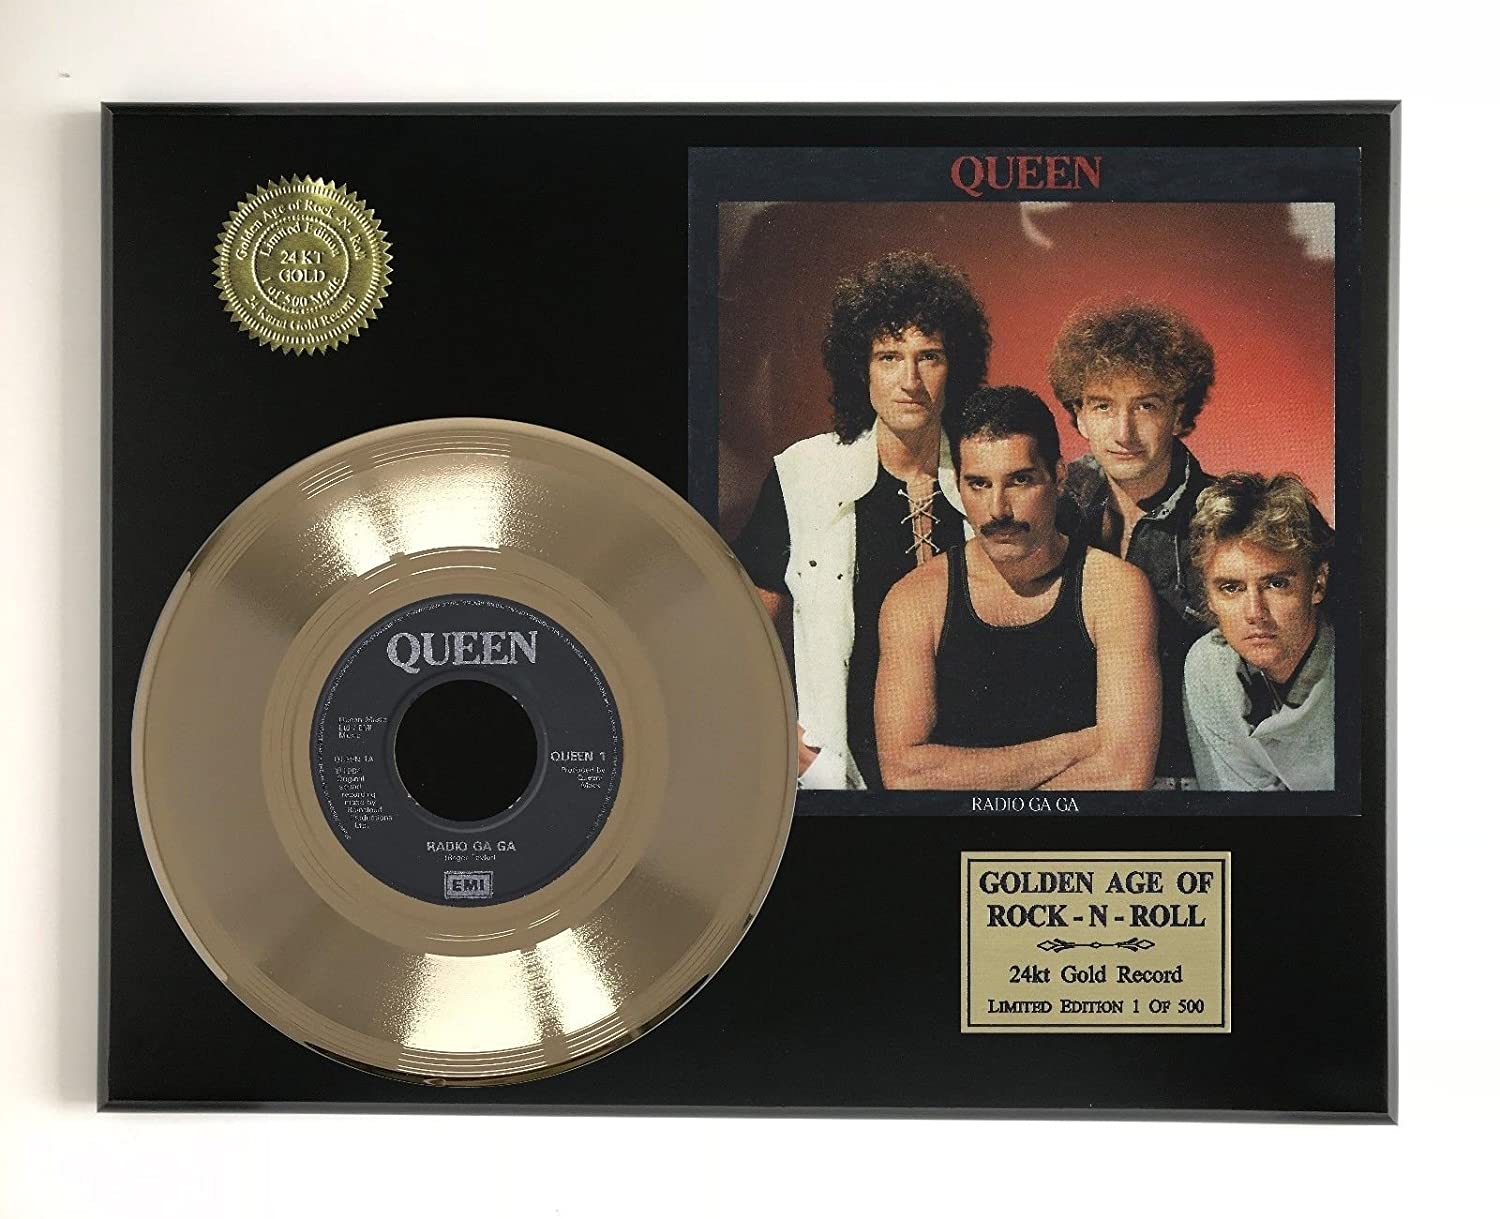 Queen - Radio Gaga Ltd Edition Gold 45 Record Display M4